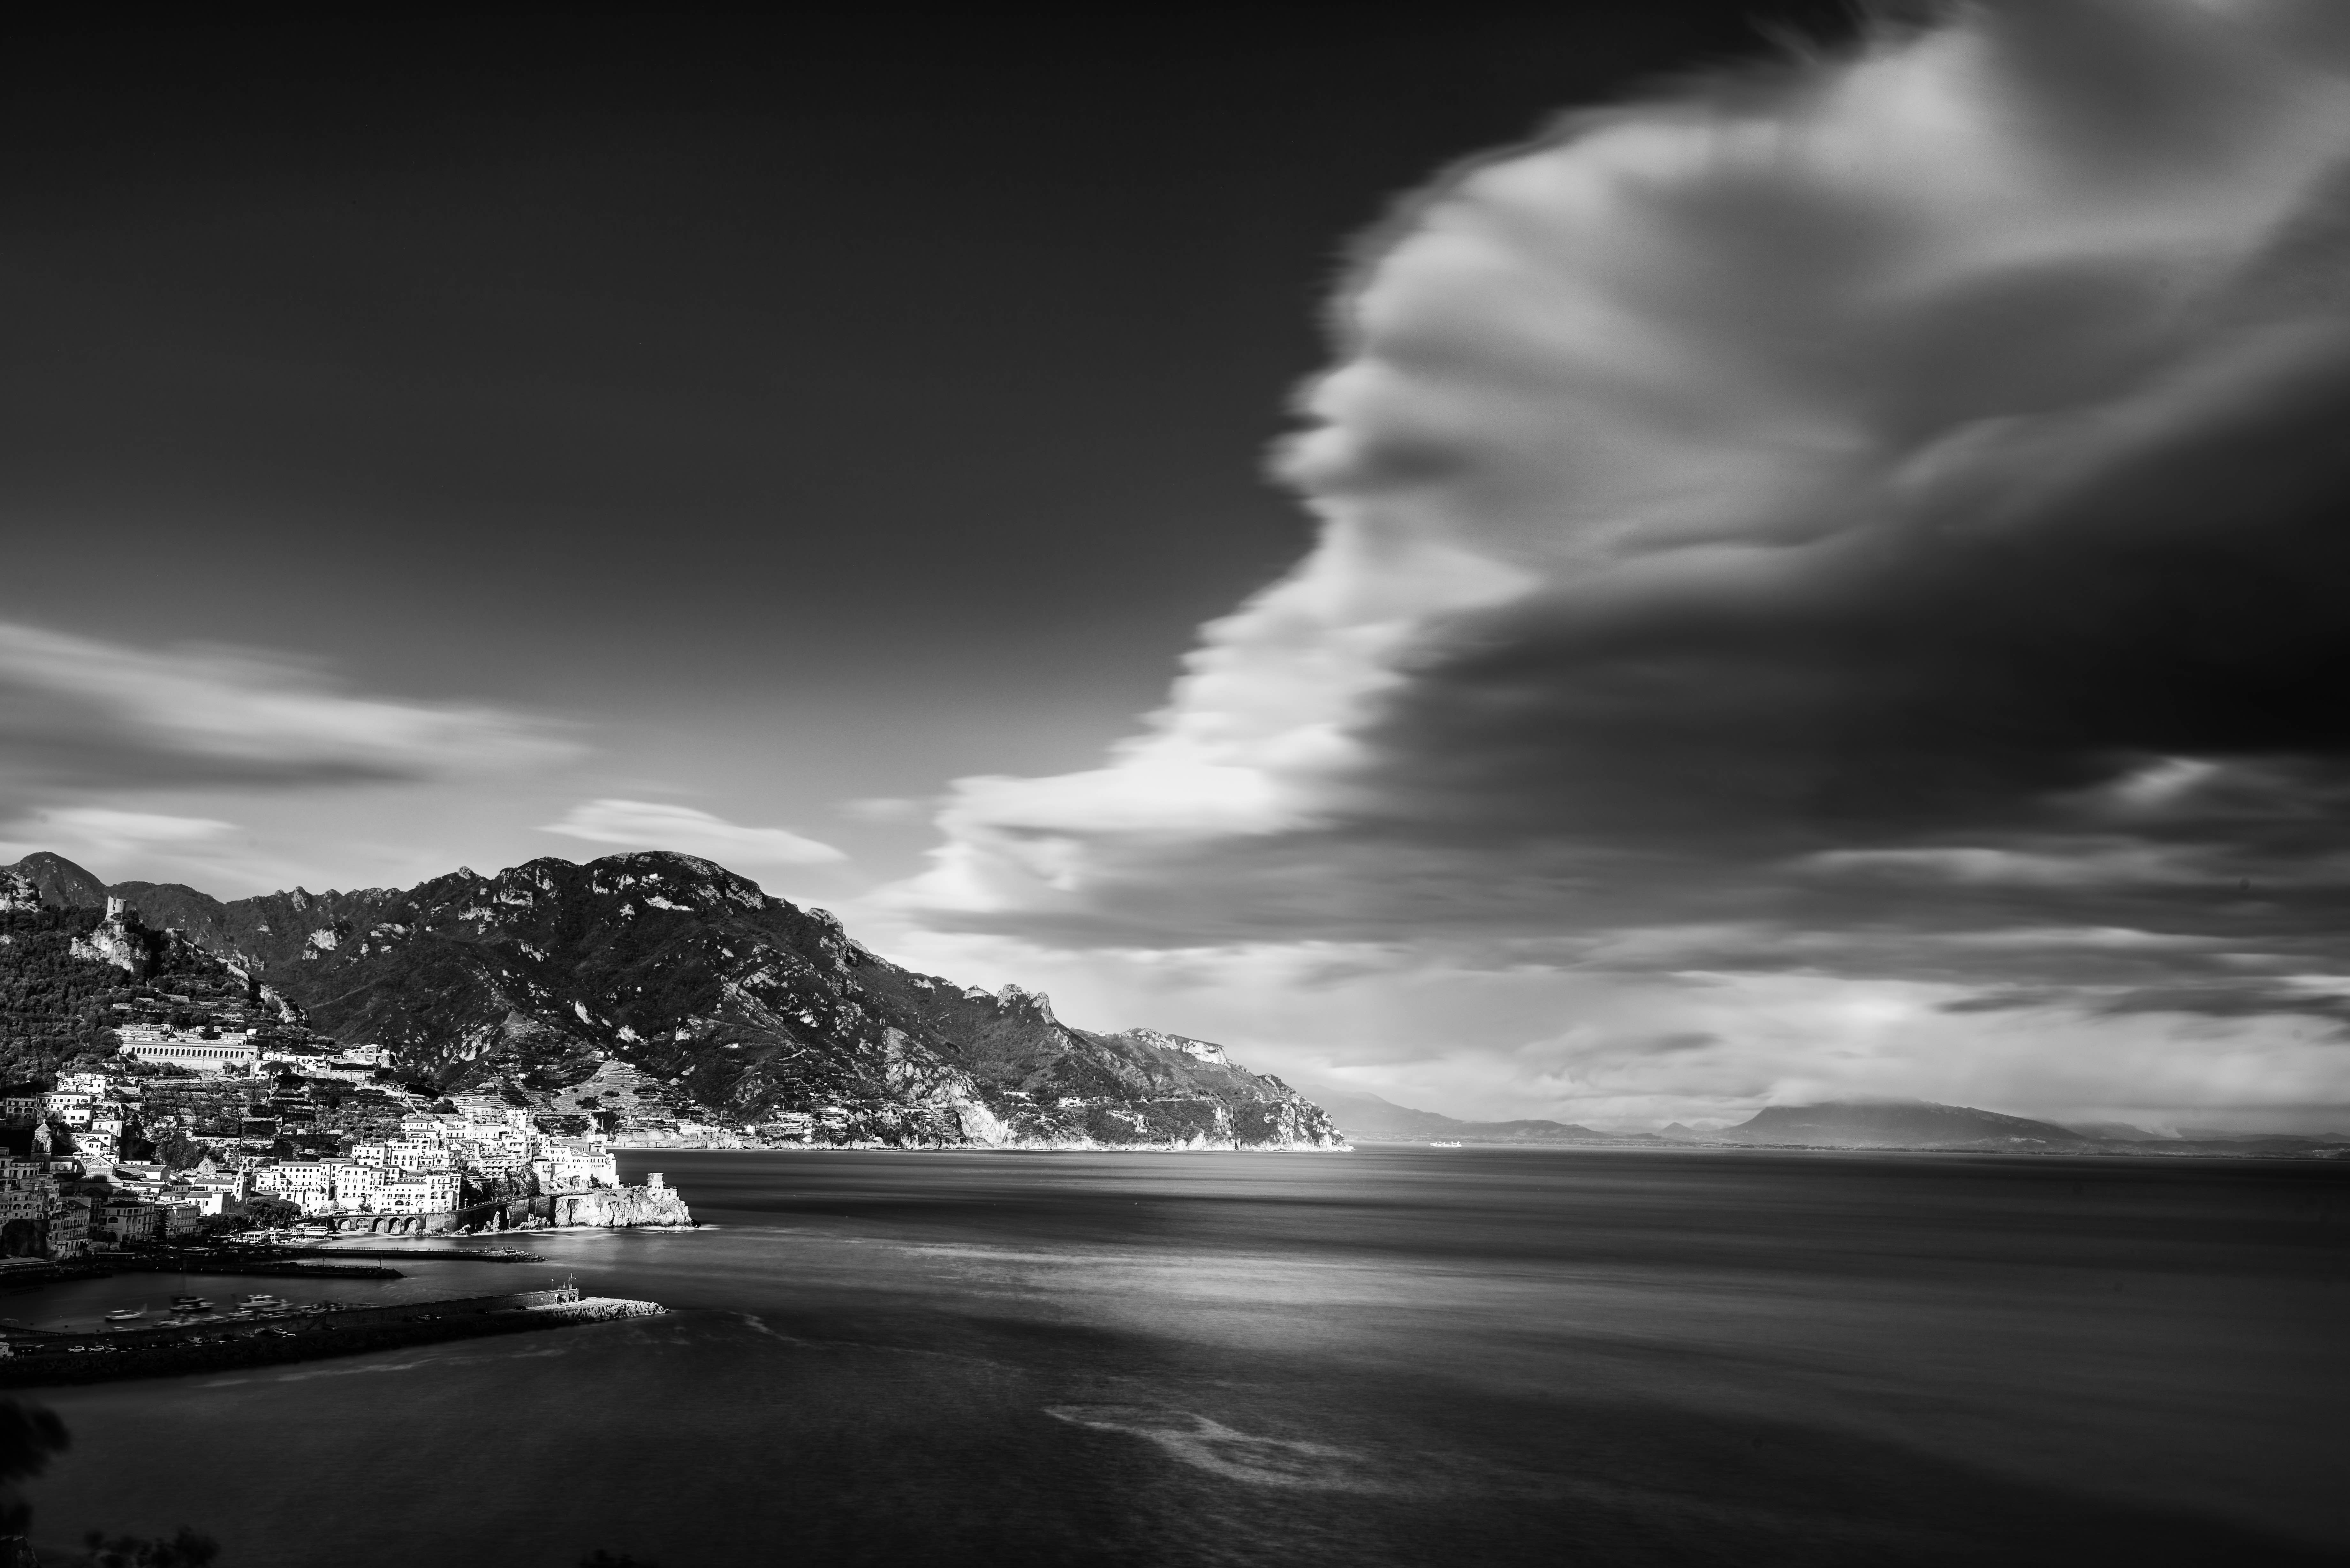 amalfi, Black and White, Clouds, costiera amalfitana, Estate, Festa, Mare, Positano, Reportage, Sea, travel, viaggi